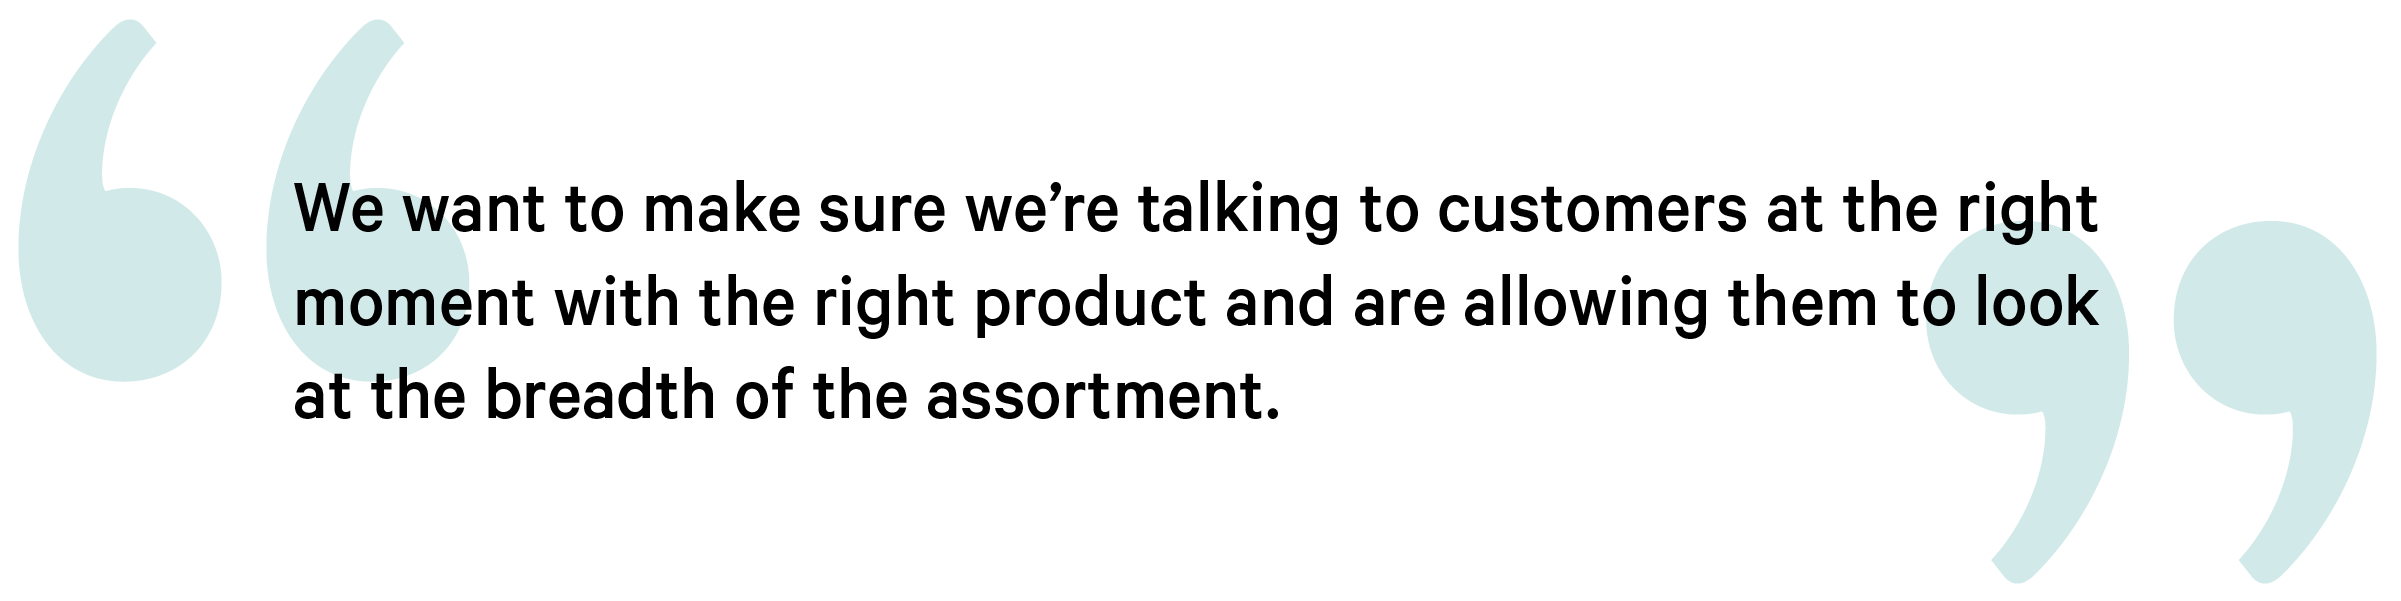 quote Hatch Spectrum we want to make sure we're talking to them at the right moment with the right product and are allowing them to look at the breadth of the assortment